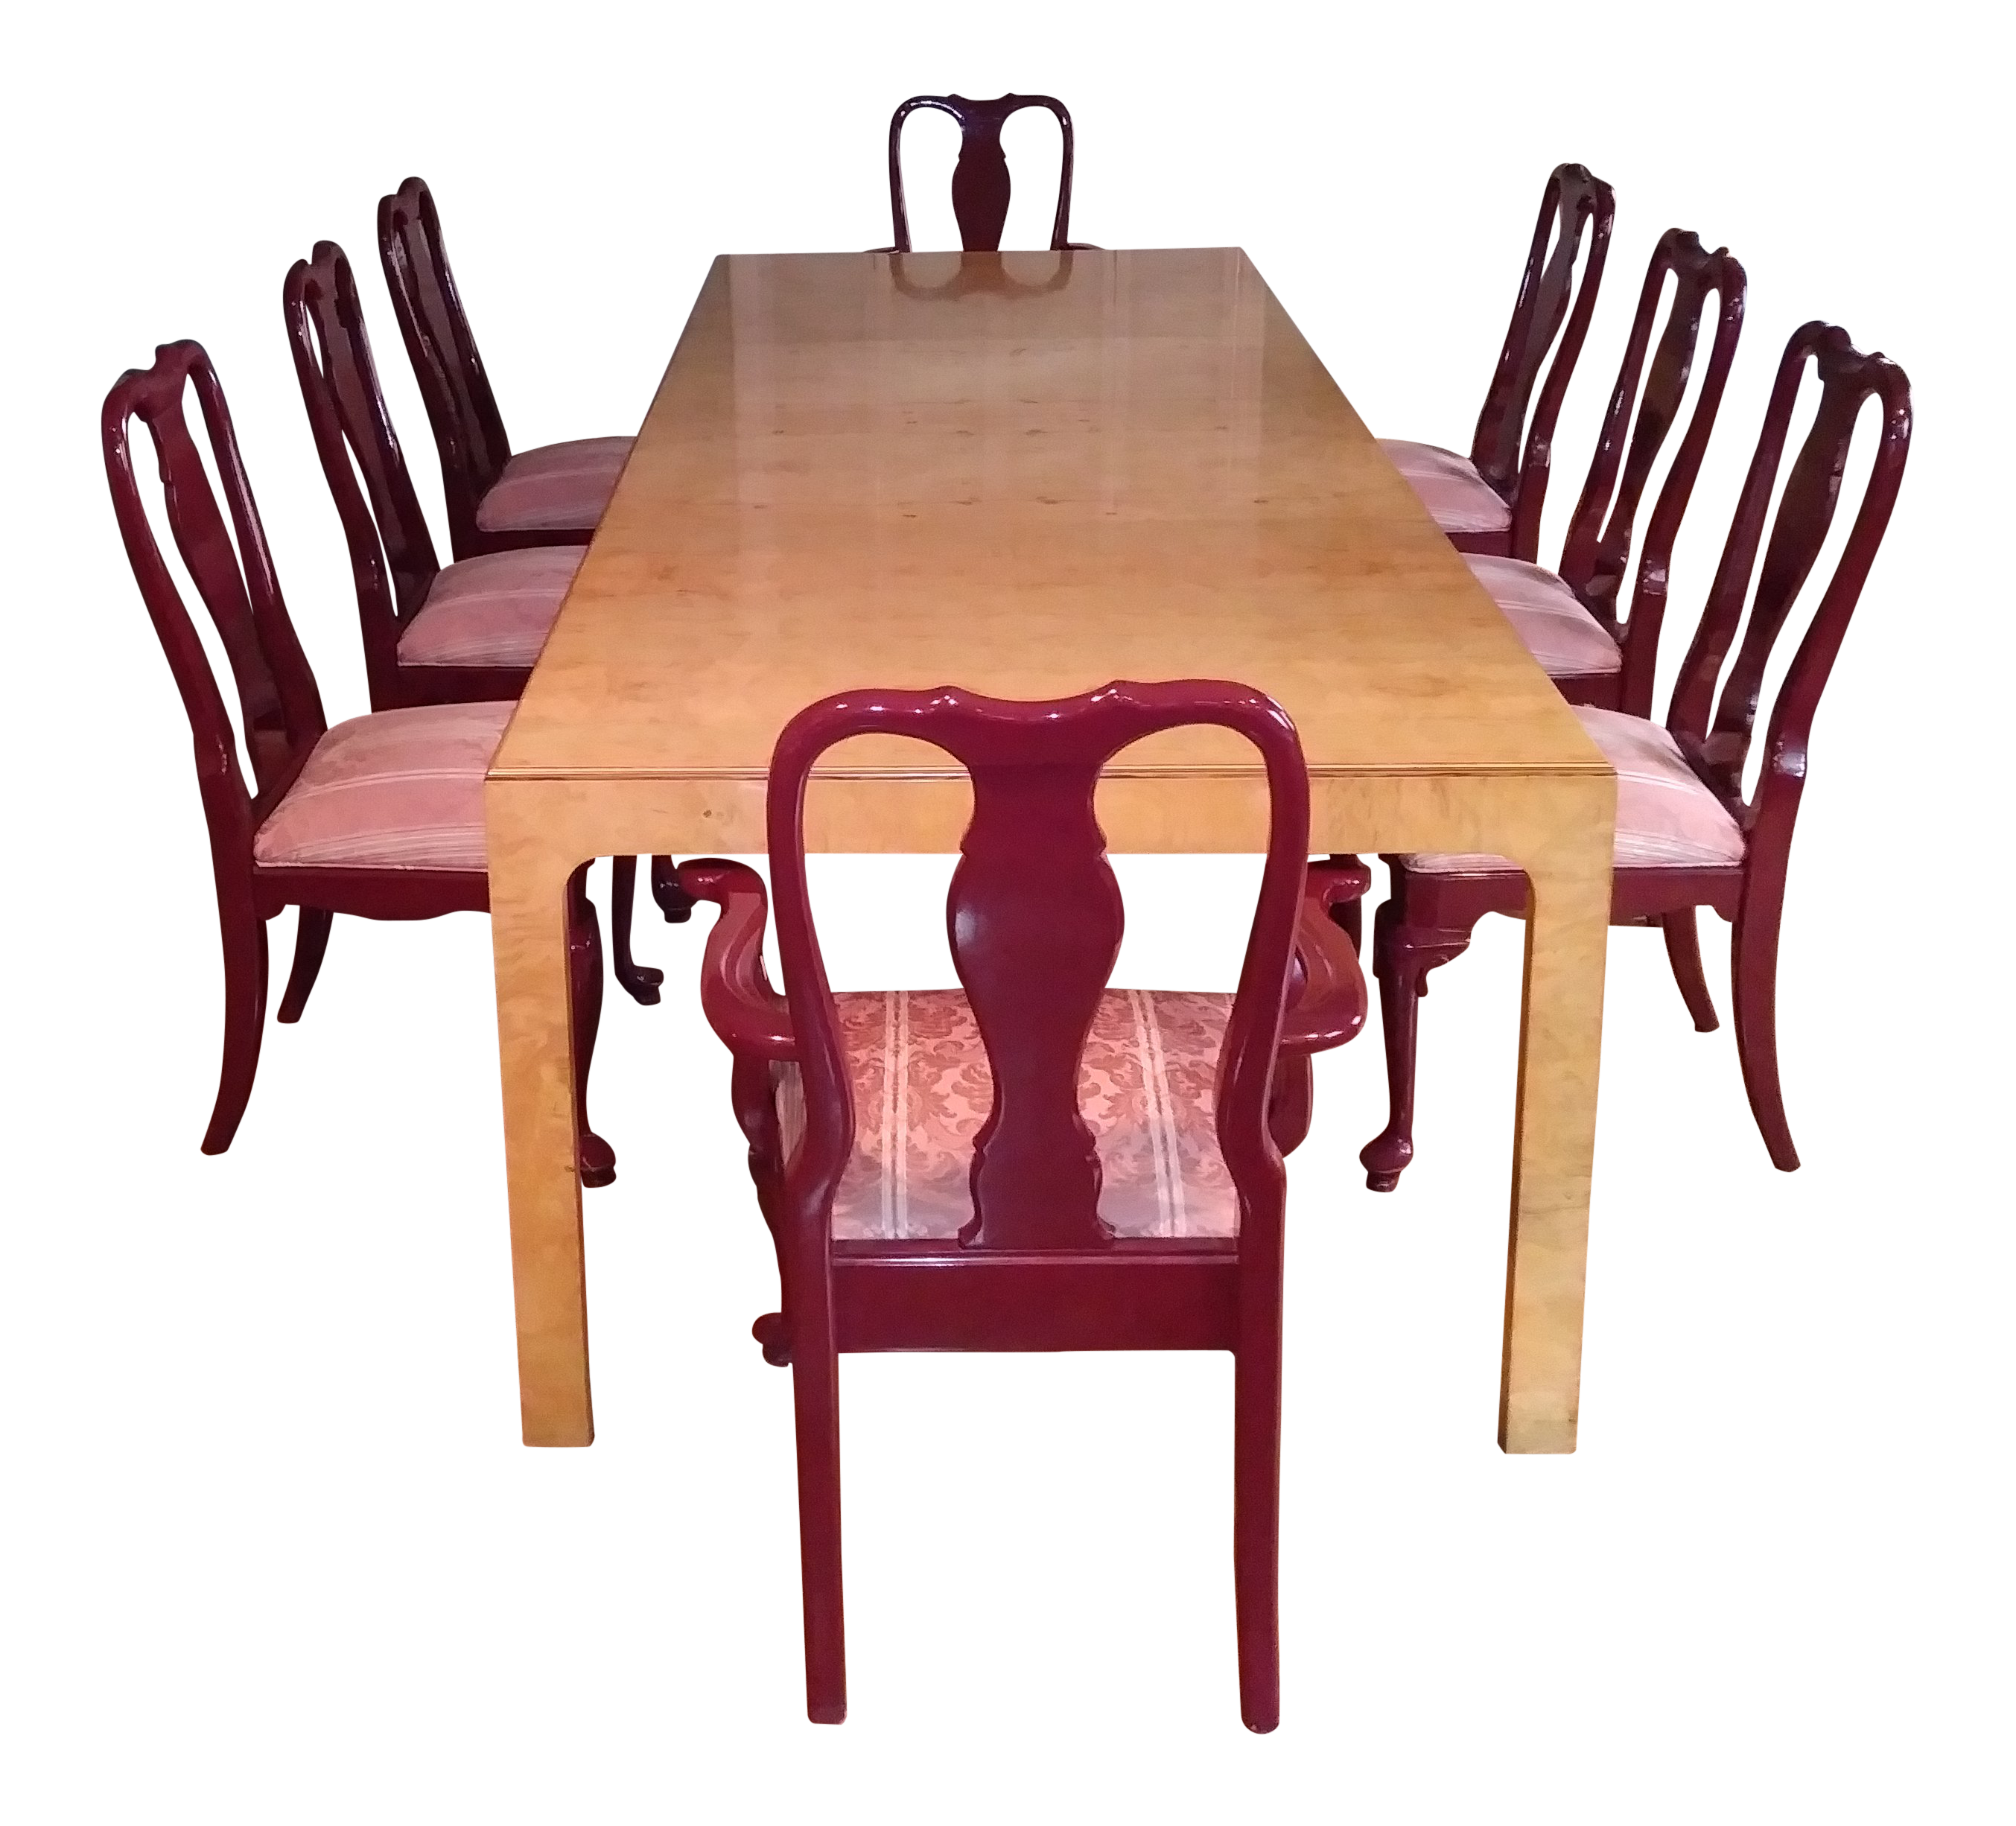 gently used henredon furniture off chairish walnut parsons table dining set wooden display accent tops and legs nautical chandelier light fixtures outside patio chairs linen